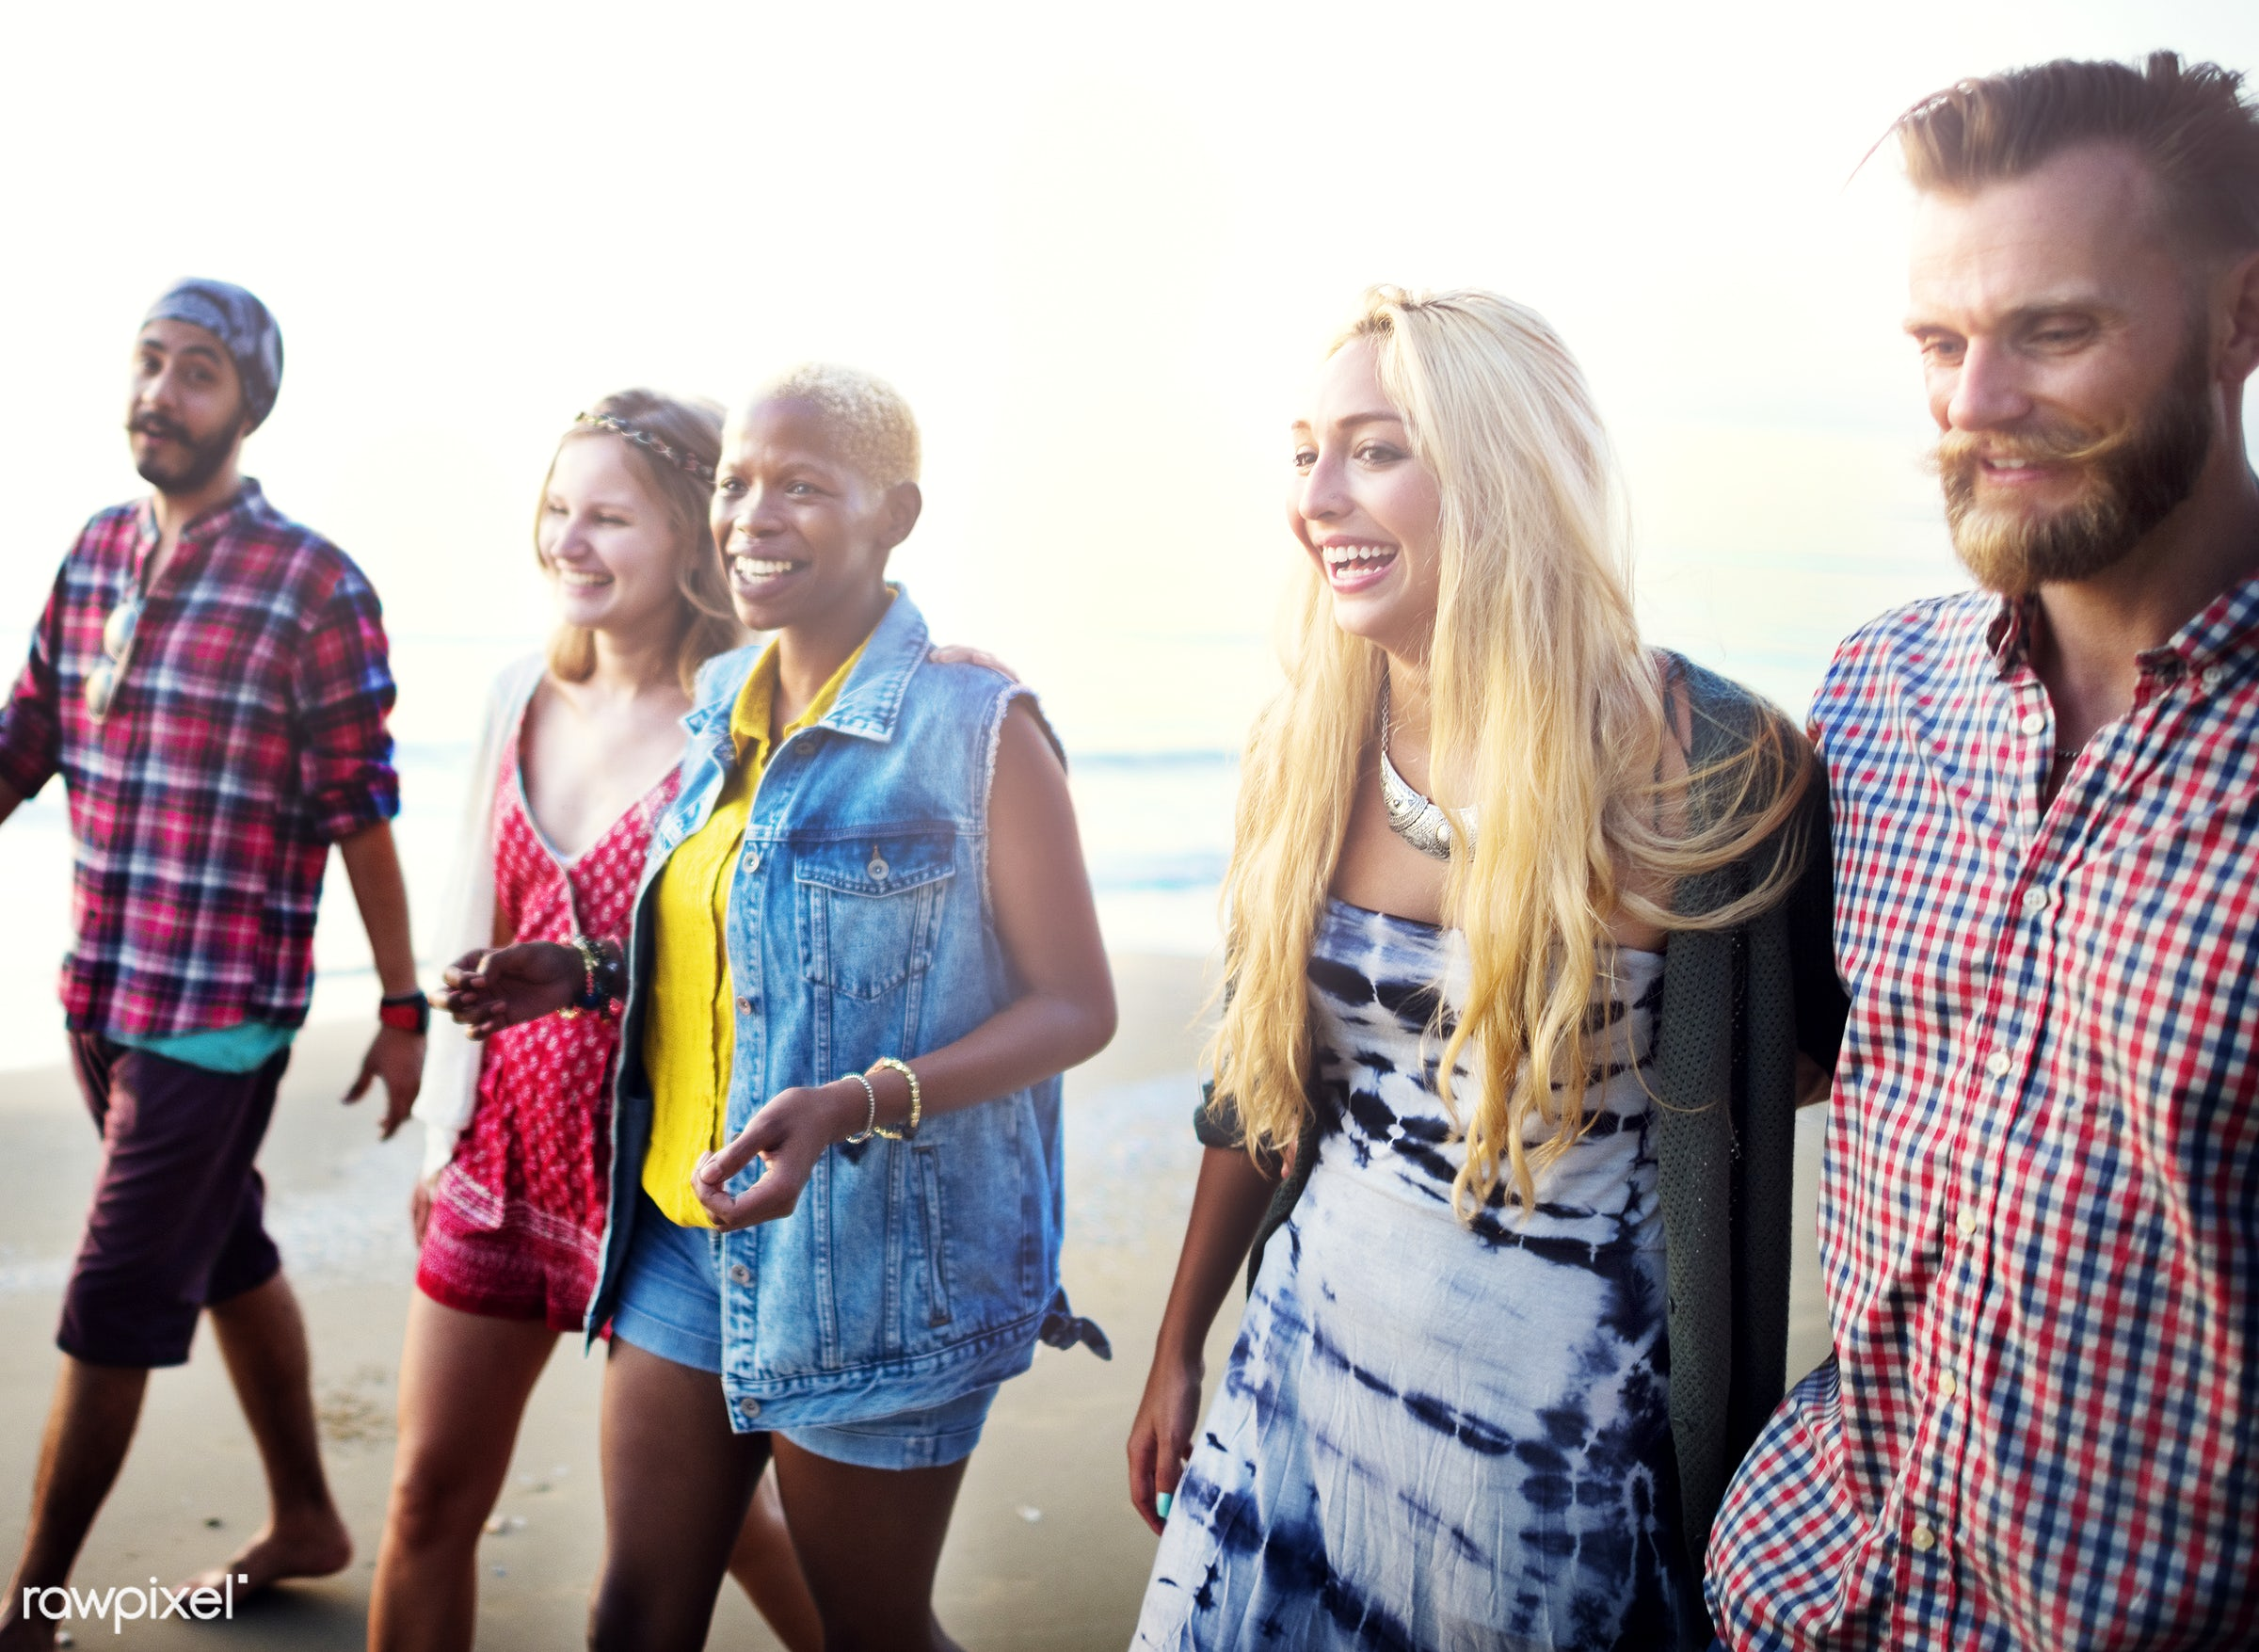 african, african descent, beach, beautiful, bonding, bright, casual, cheerful, chilling, colorful, day, diverse, enjoyment,...